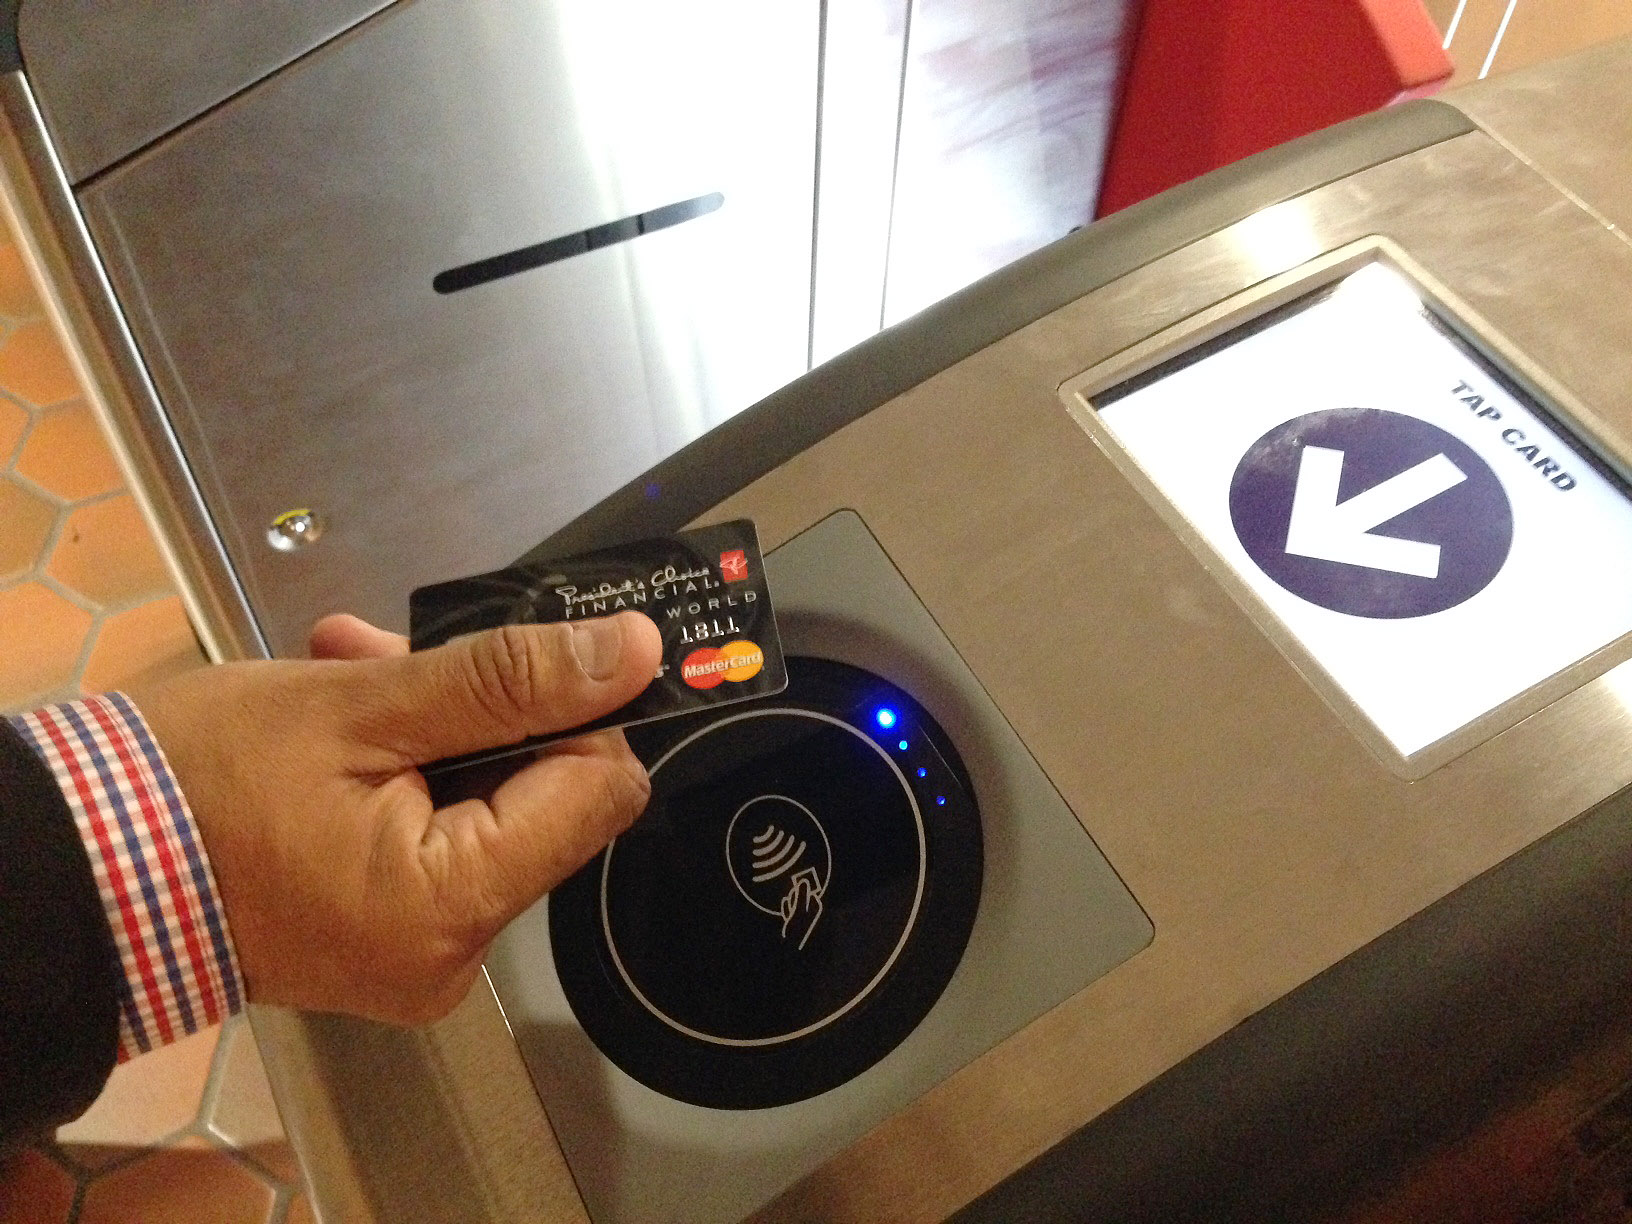 Metro cancels new generation fare system contract